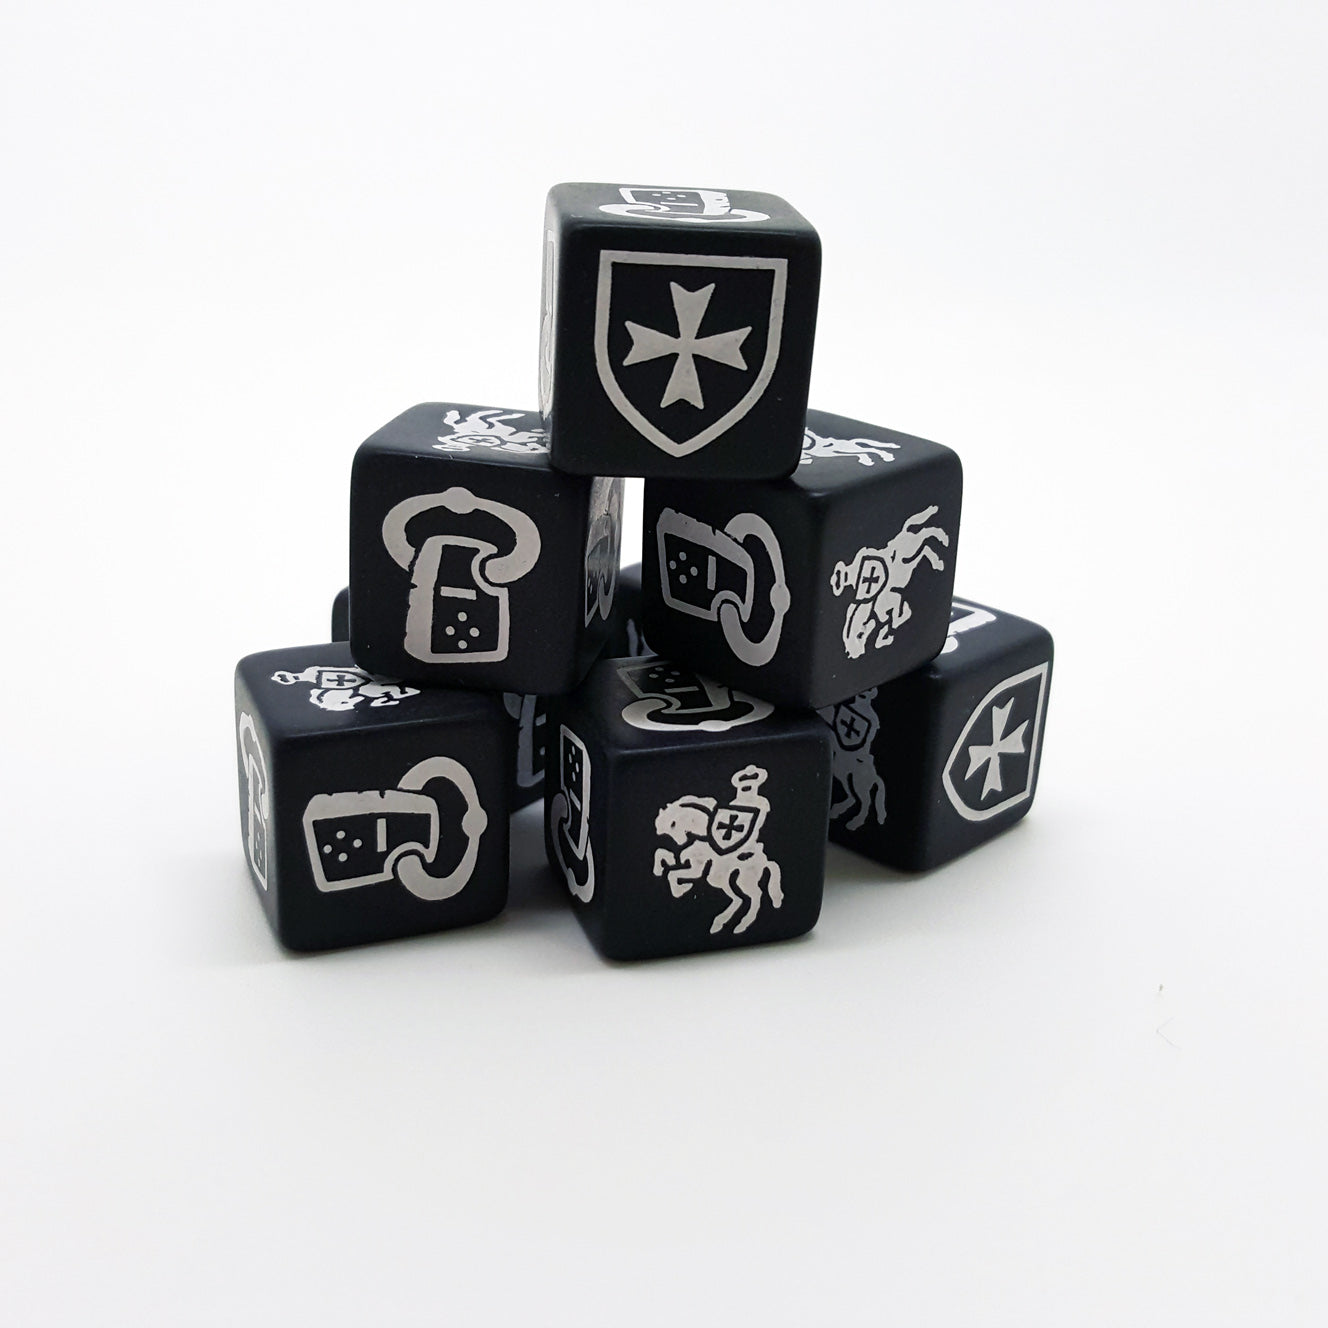 Teutonic Dice | Mythicos